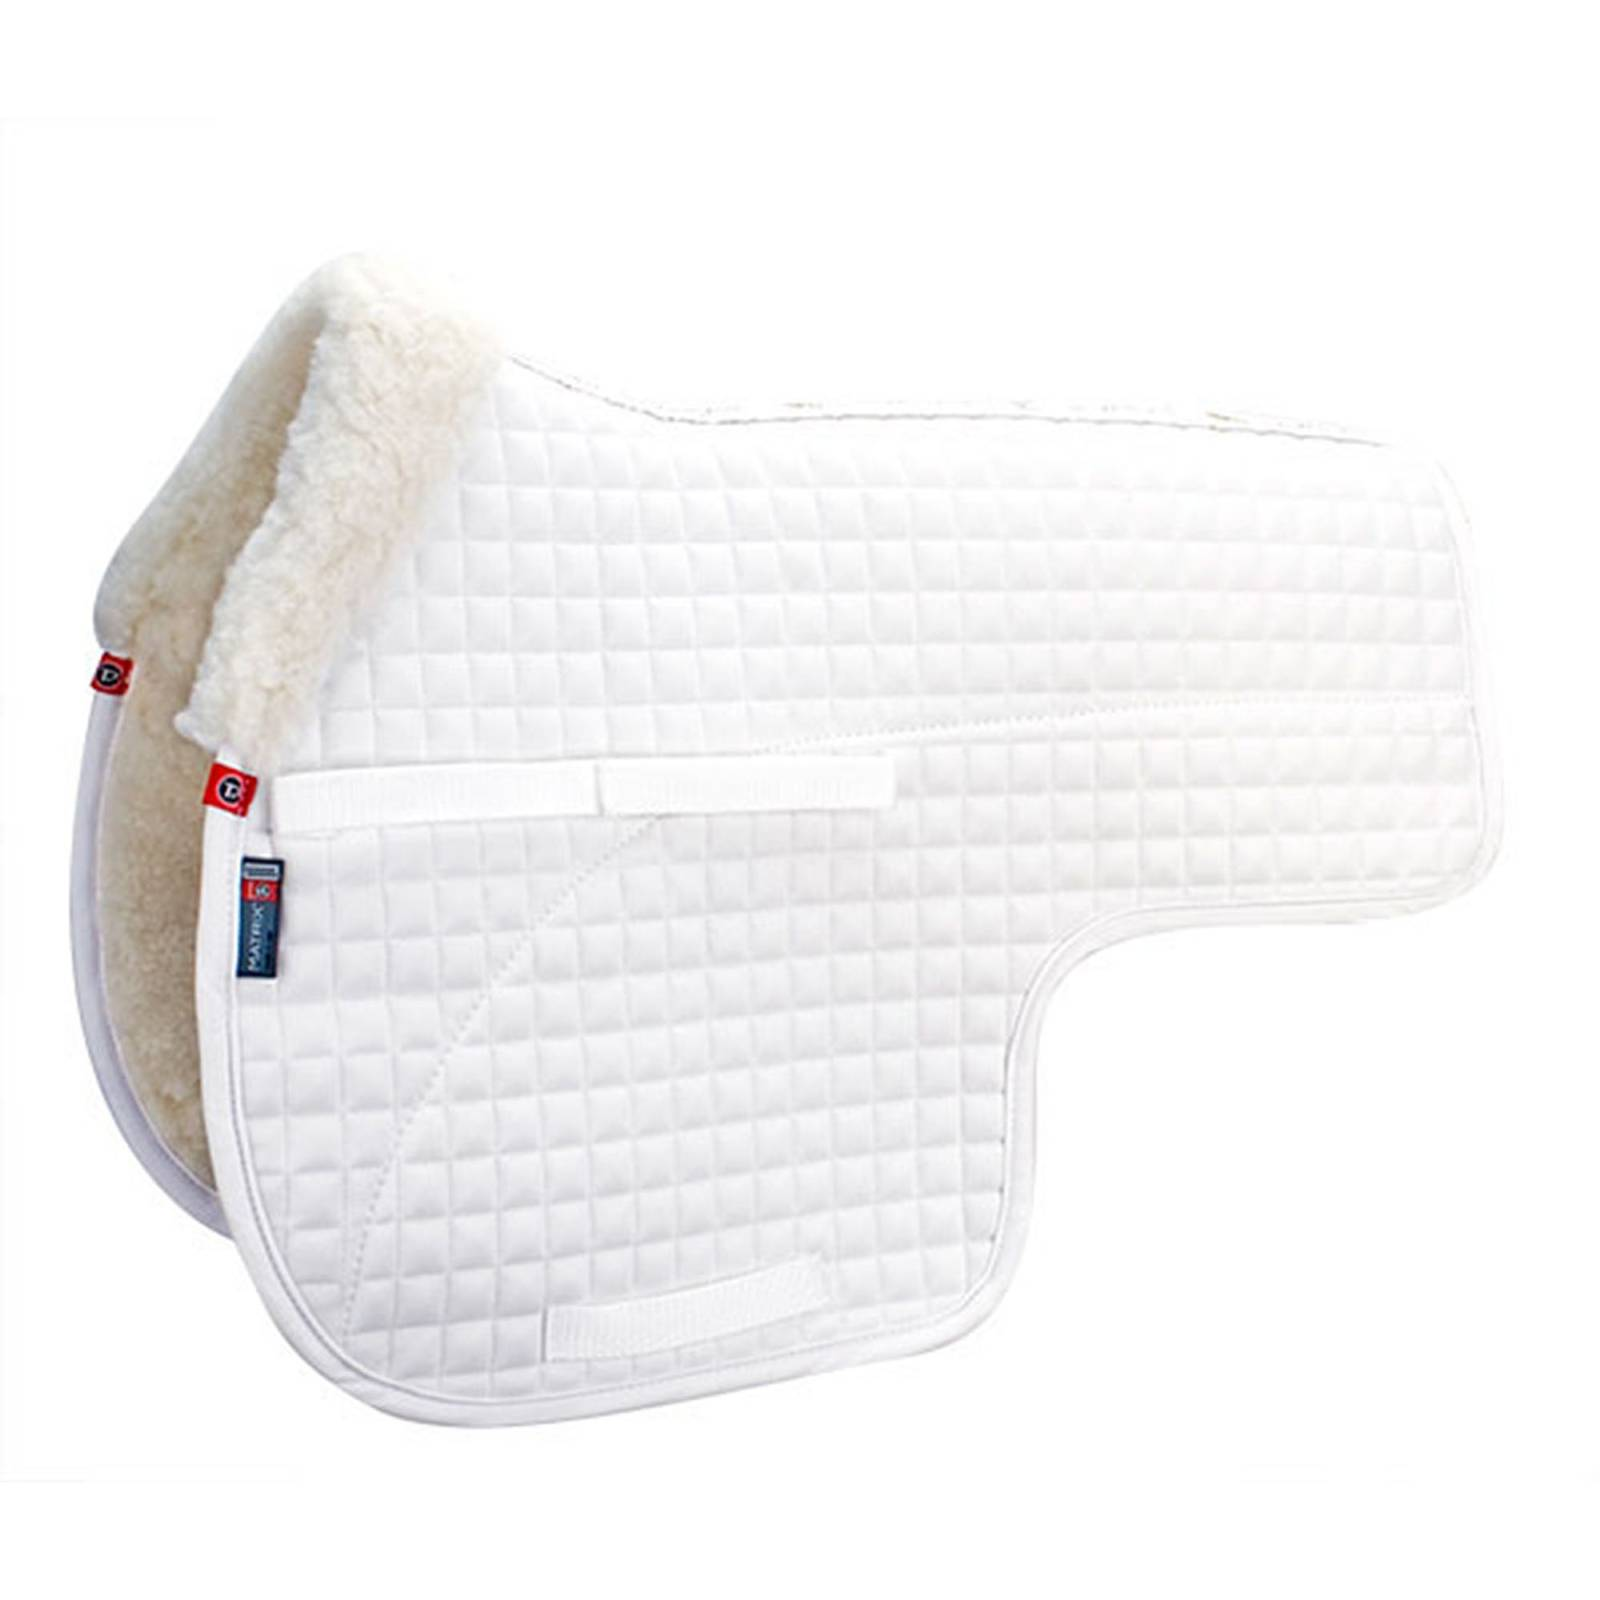 Outlet - Matrix Competition Sheepskin Cross Country Saddle Pad by Toklat, Cross Country